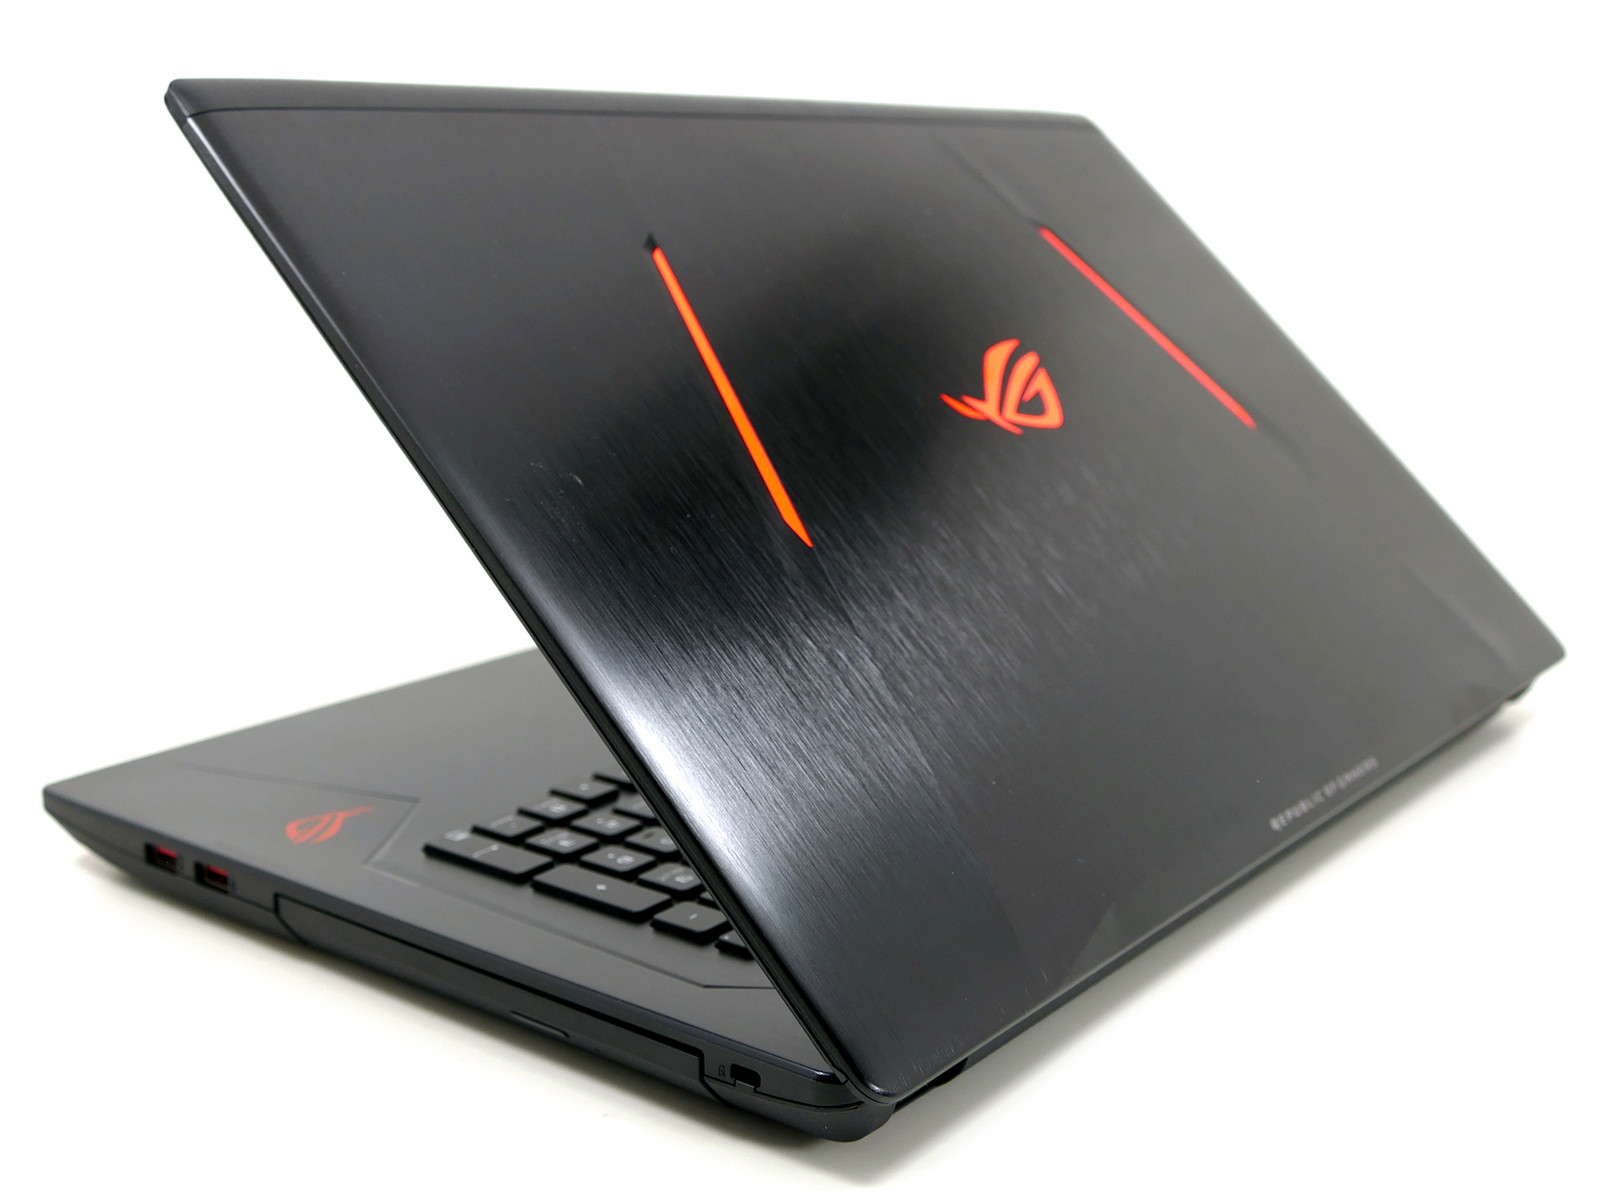 Asus Strix Gl753vd Gc045t Notebookcheck Net External Reviews